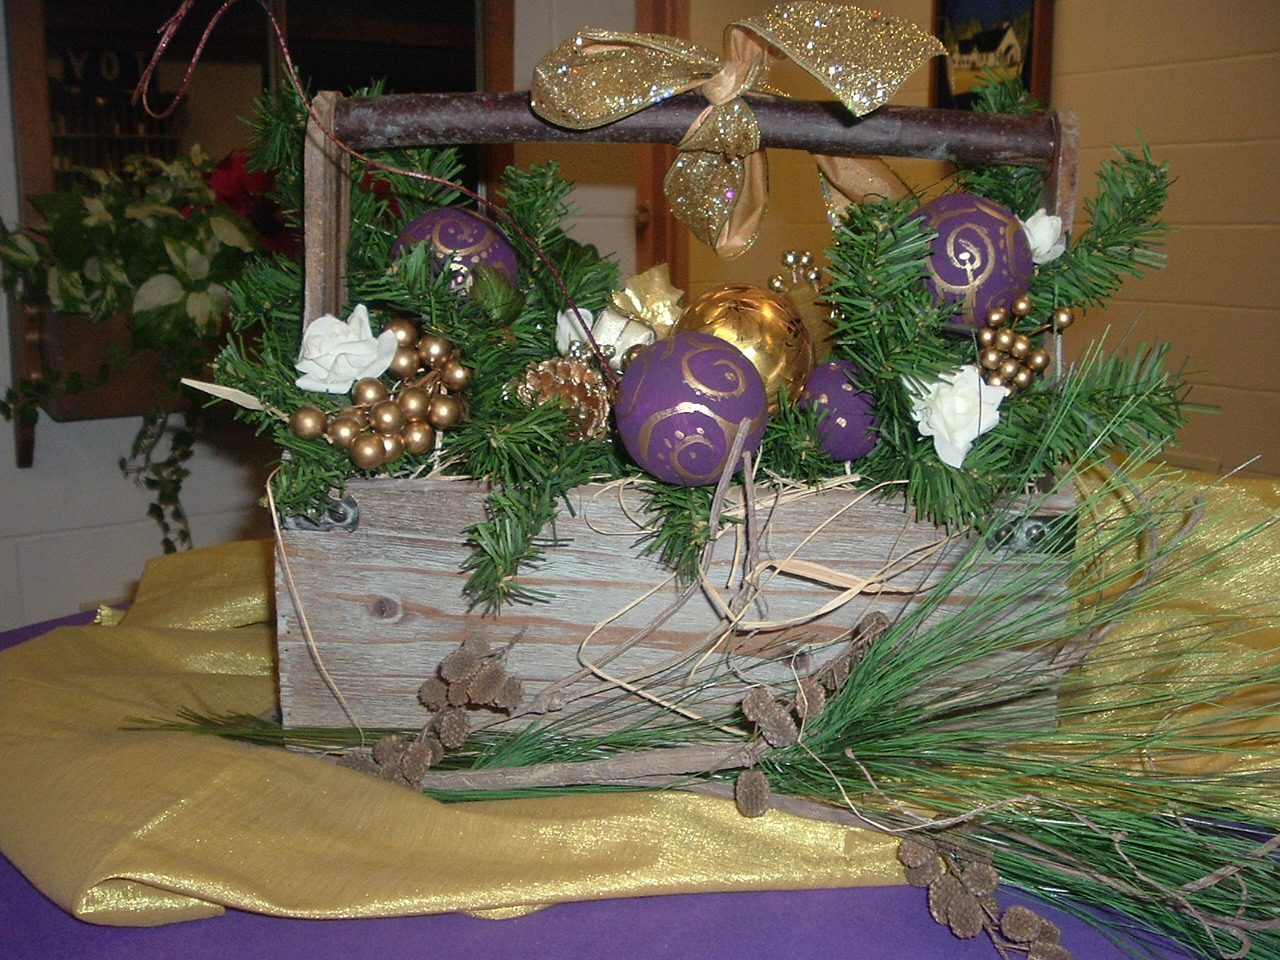 Christmas arrangement for table in church foyer.